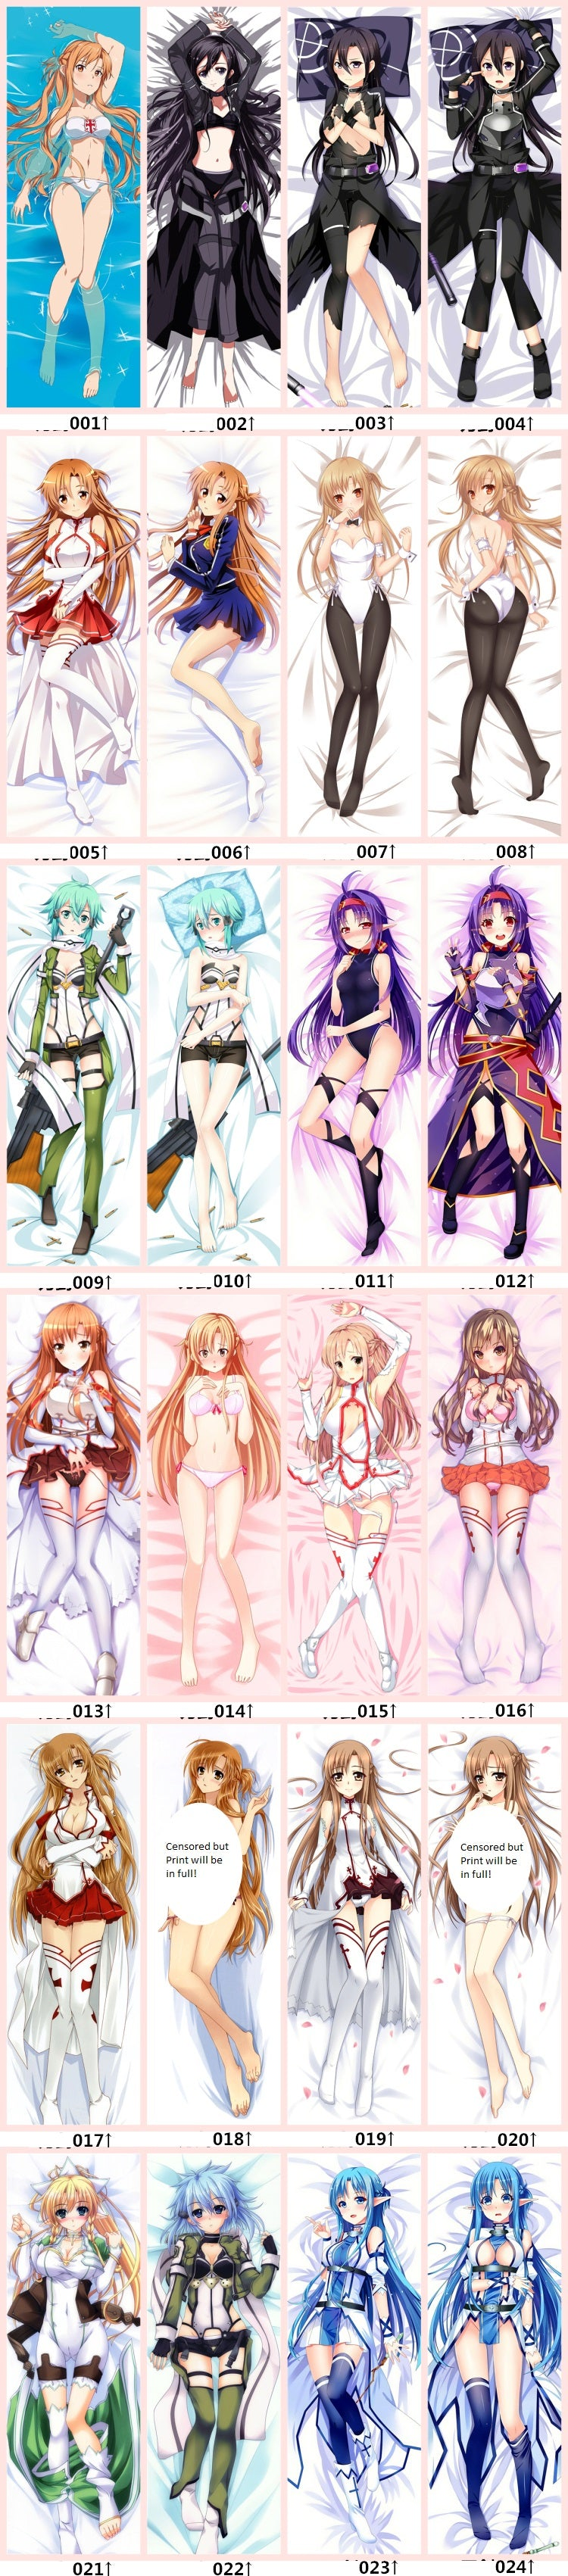 Sword Art Online Body Pillow - design options